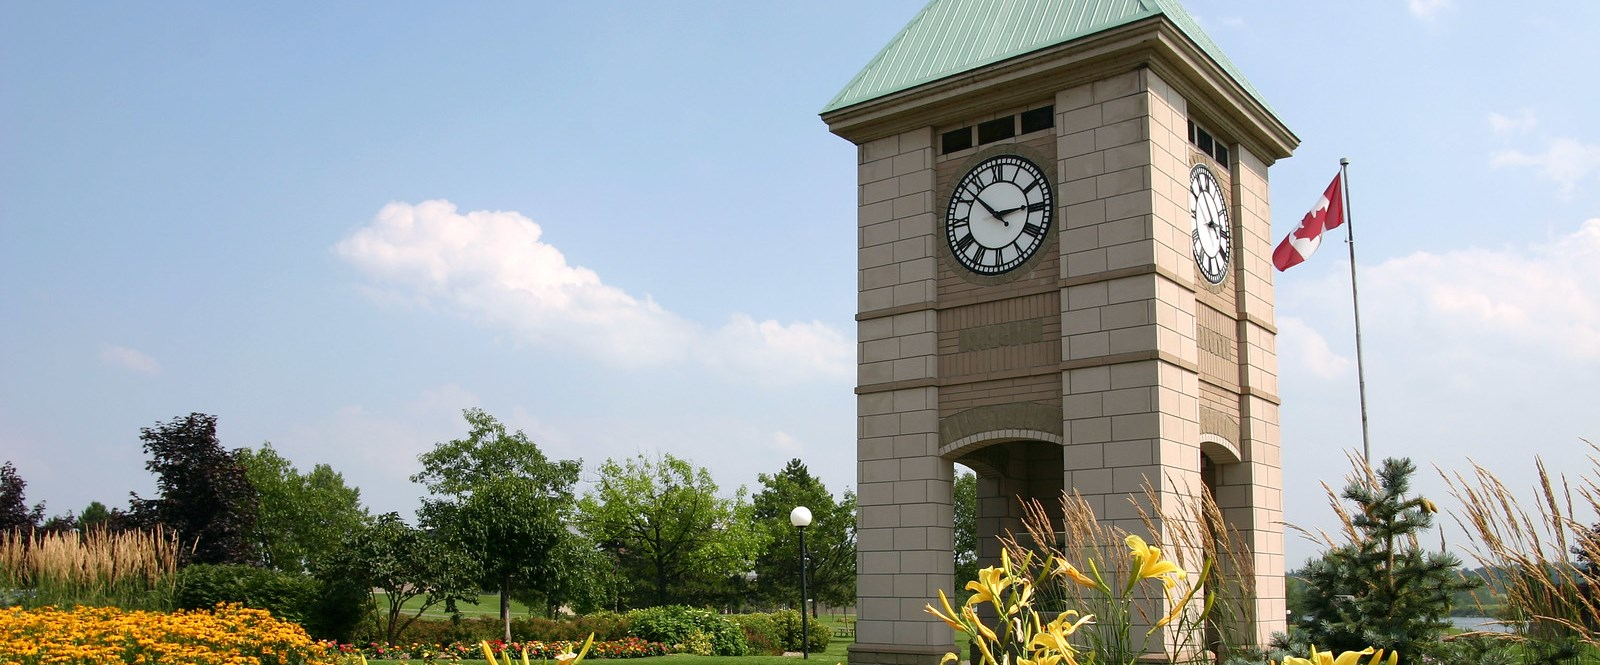 Clock tower with flowers